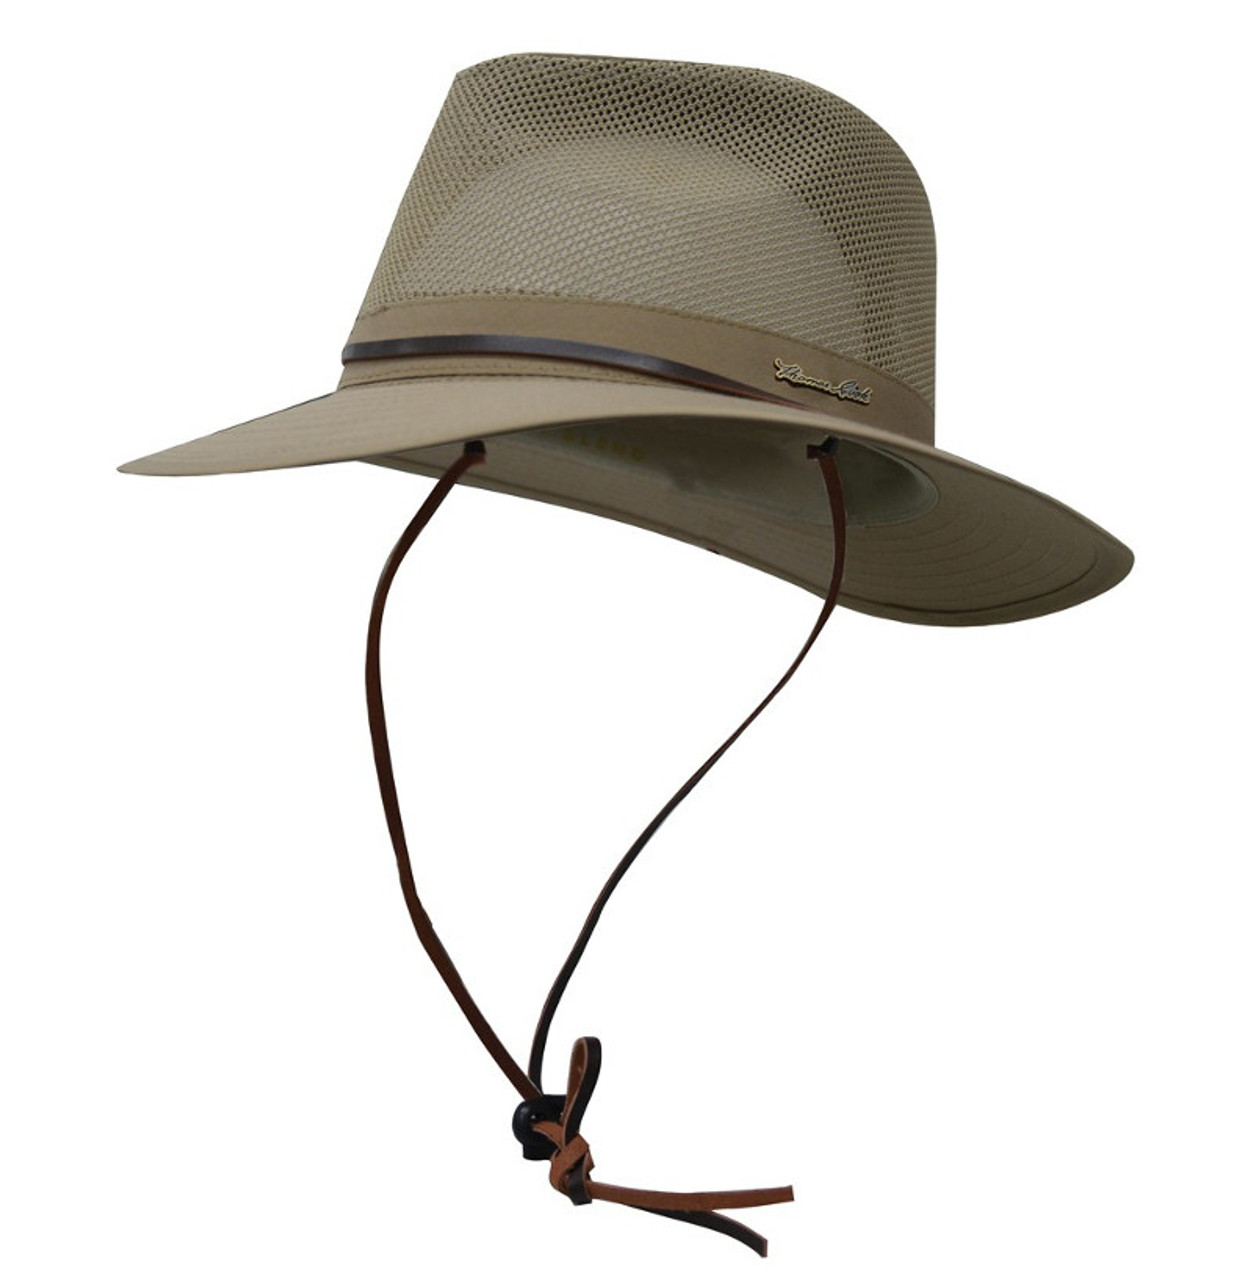 Thomas Cook Kakadu Hat with Airmesh Ventilation and Hat Strap in Khaki  (TCP1931HAT) 750ef482516